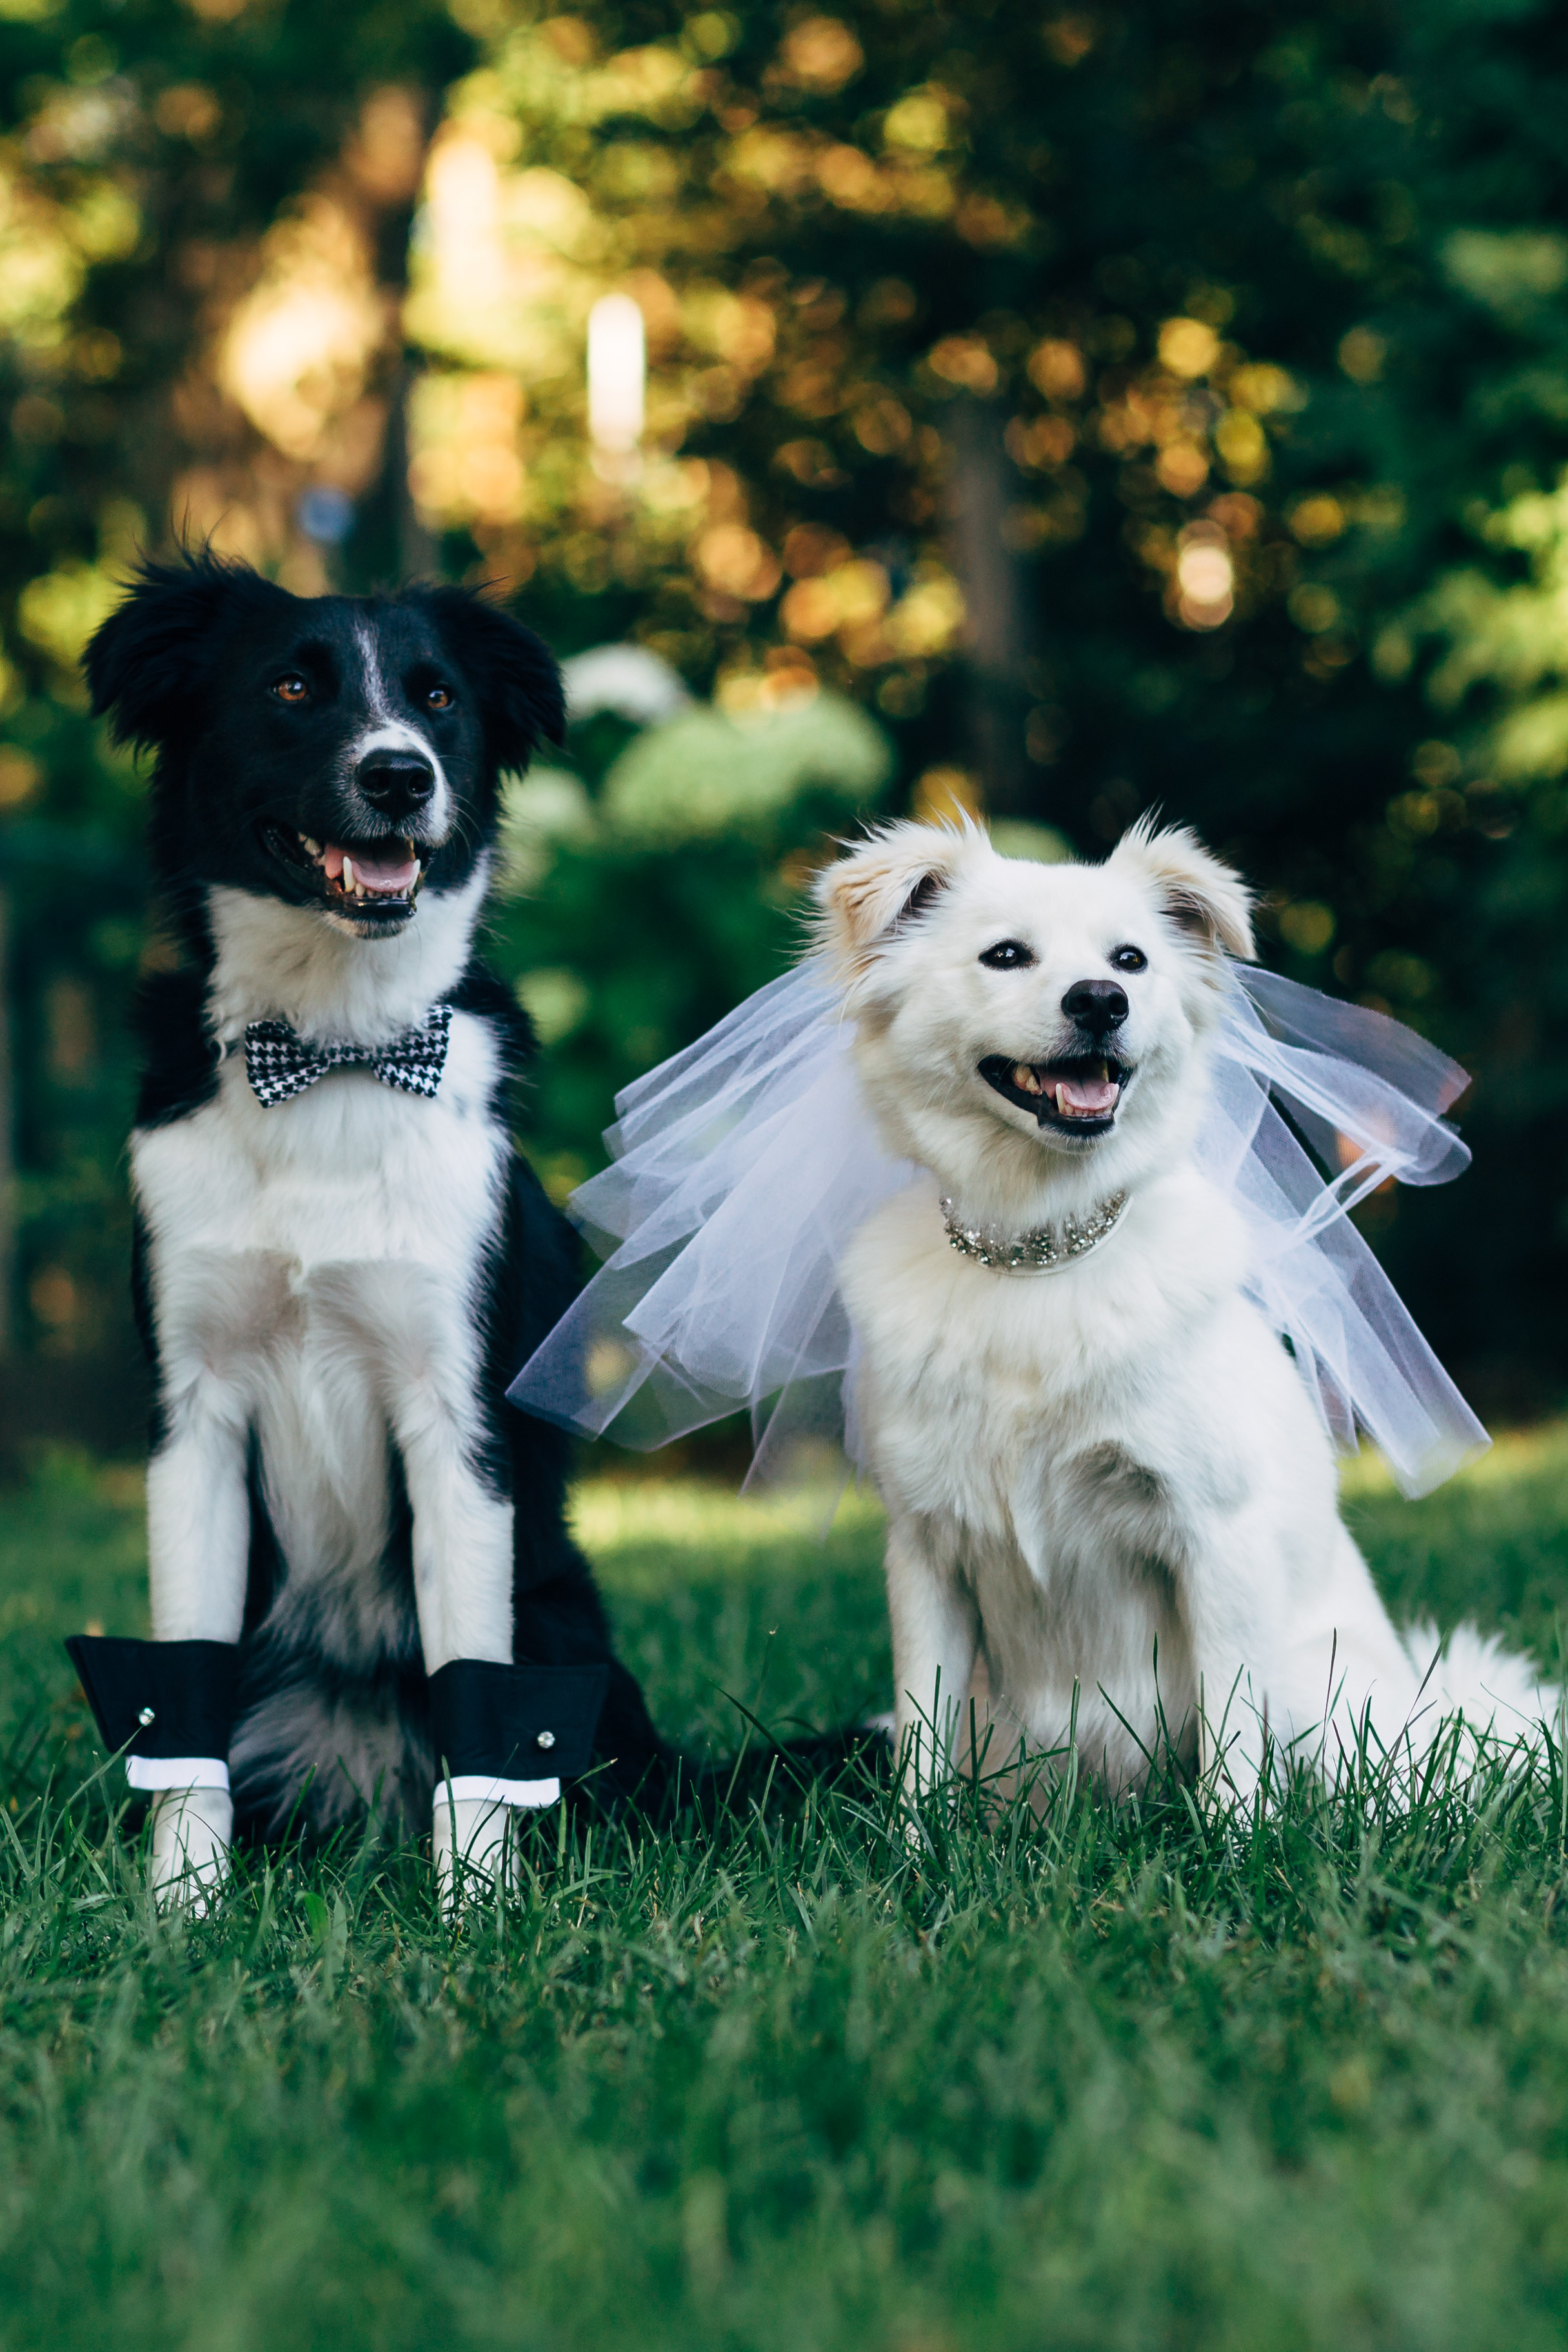 Cute Marriage Couple Wallpaper These Furry Friends Made Their Love Official In The Cutest